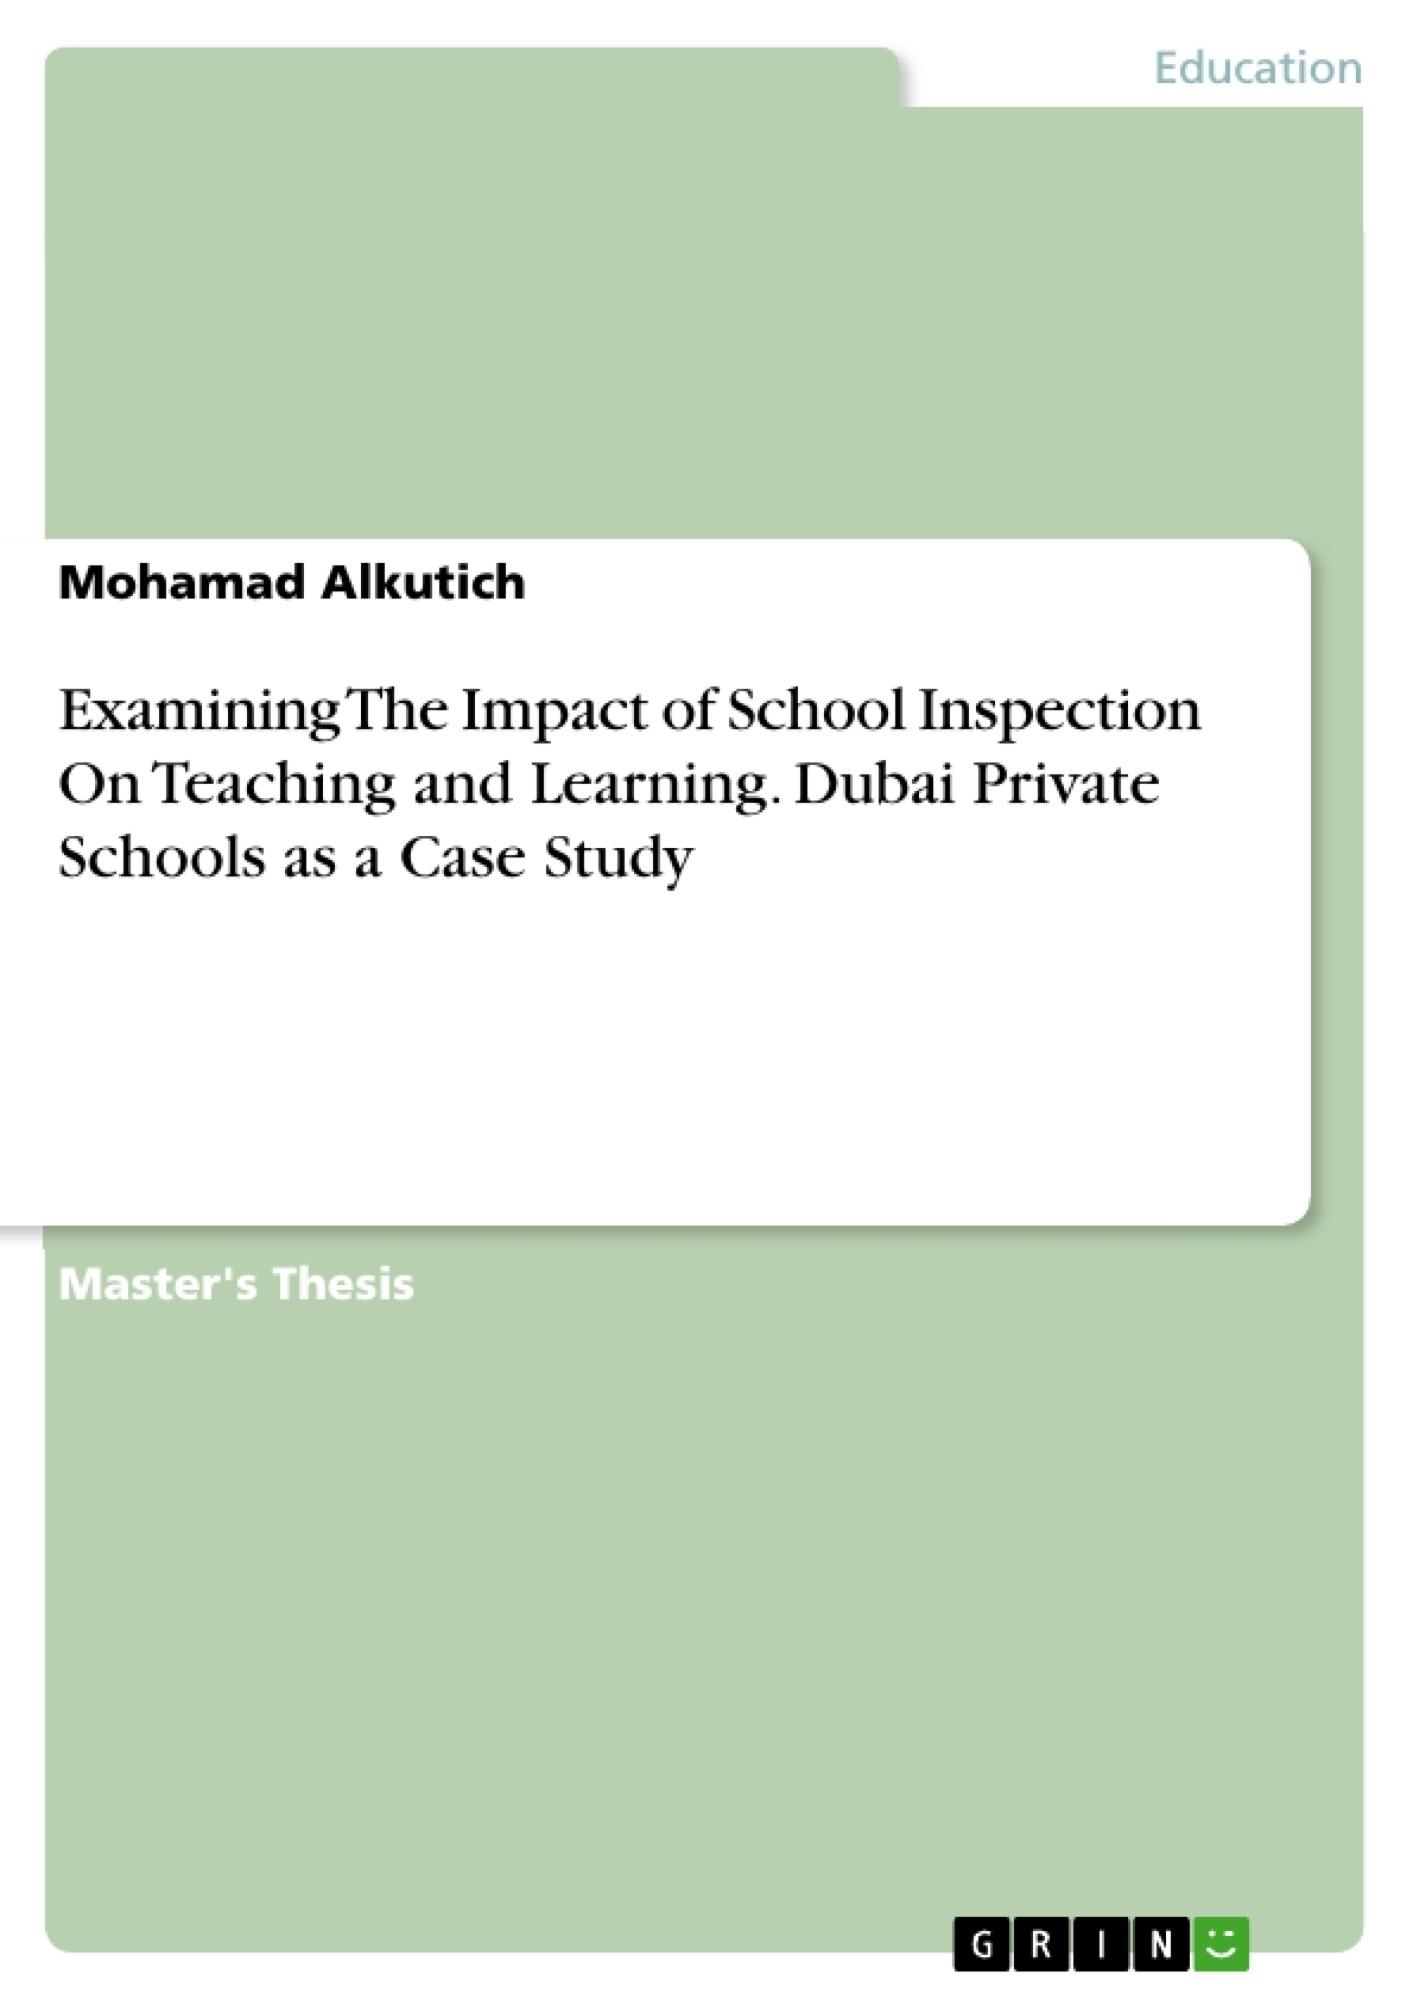 GRIN - Examining The Impact of School Inspection On Teaching and Learning   Dubai Private Schools as a Case Study